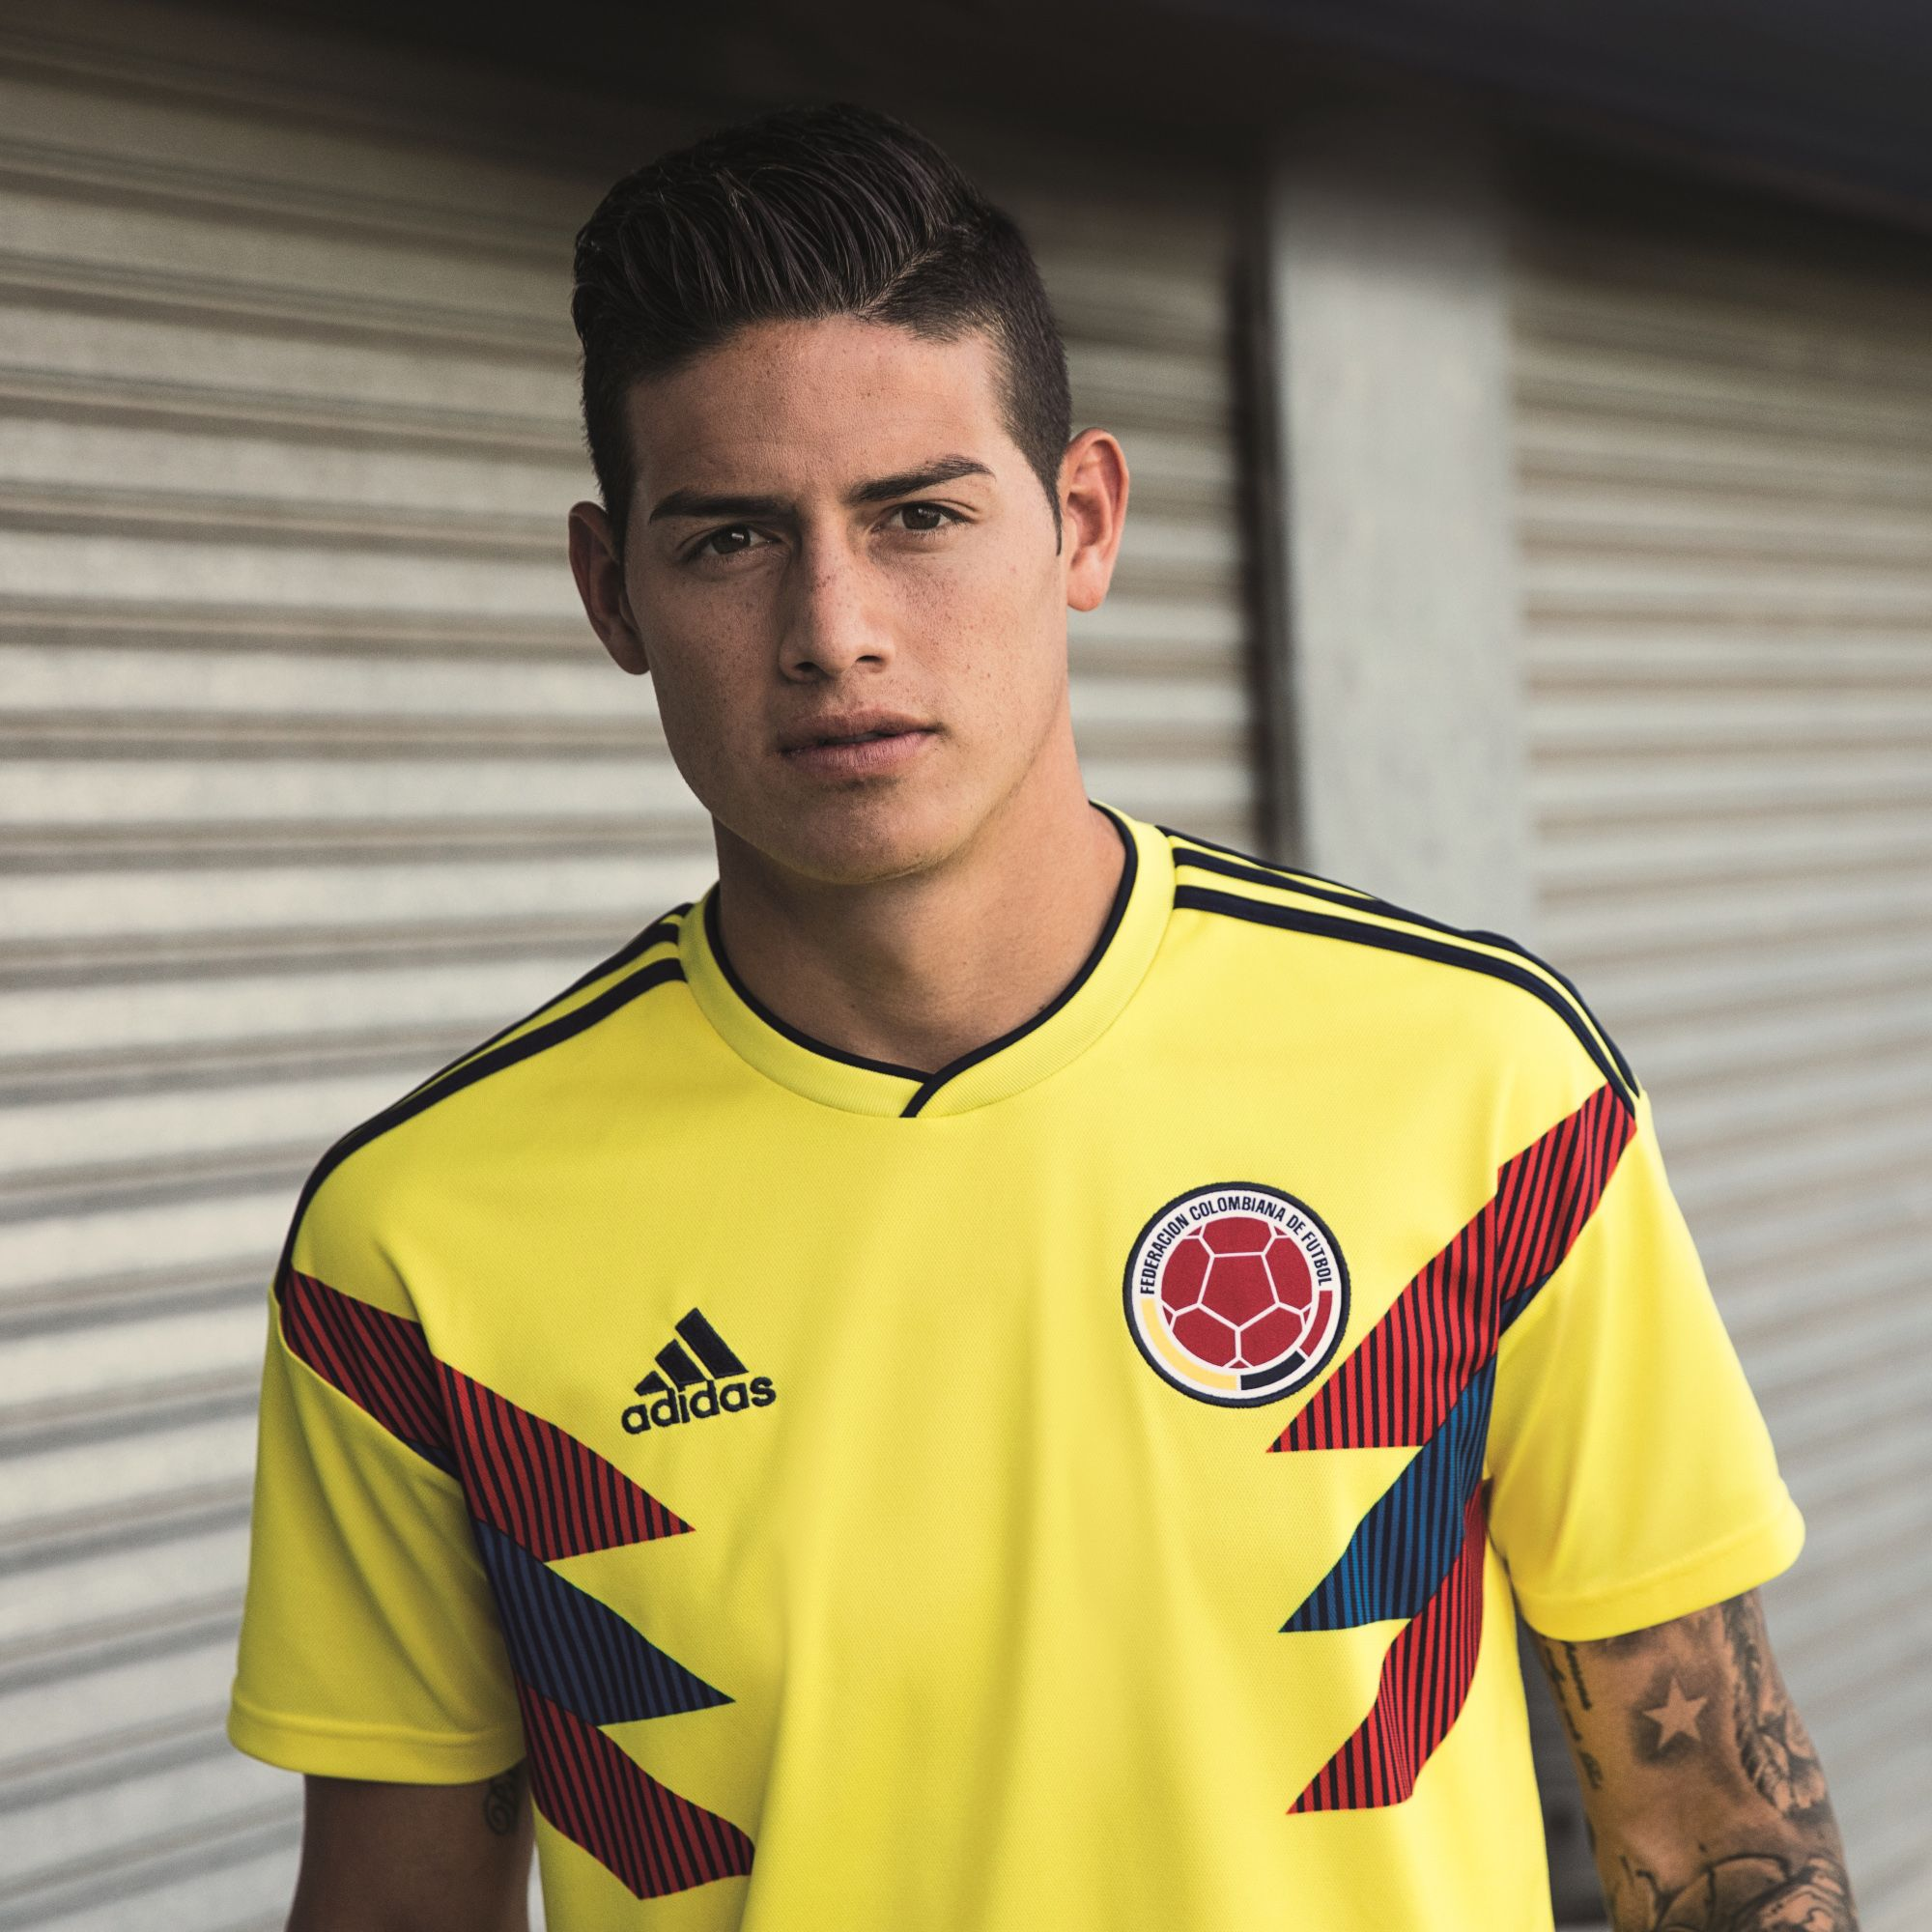 release date 2edfb 58b1f James Rodriguez in the adidas 2018 Colombia home jersey ...